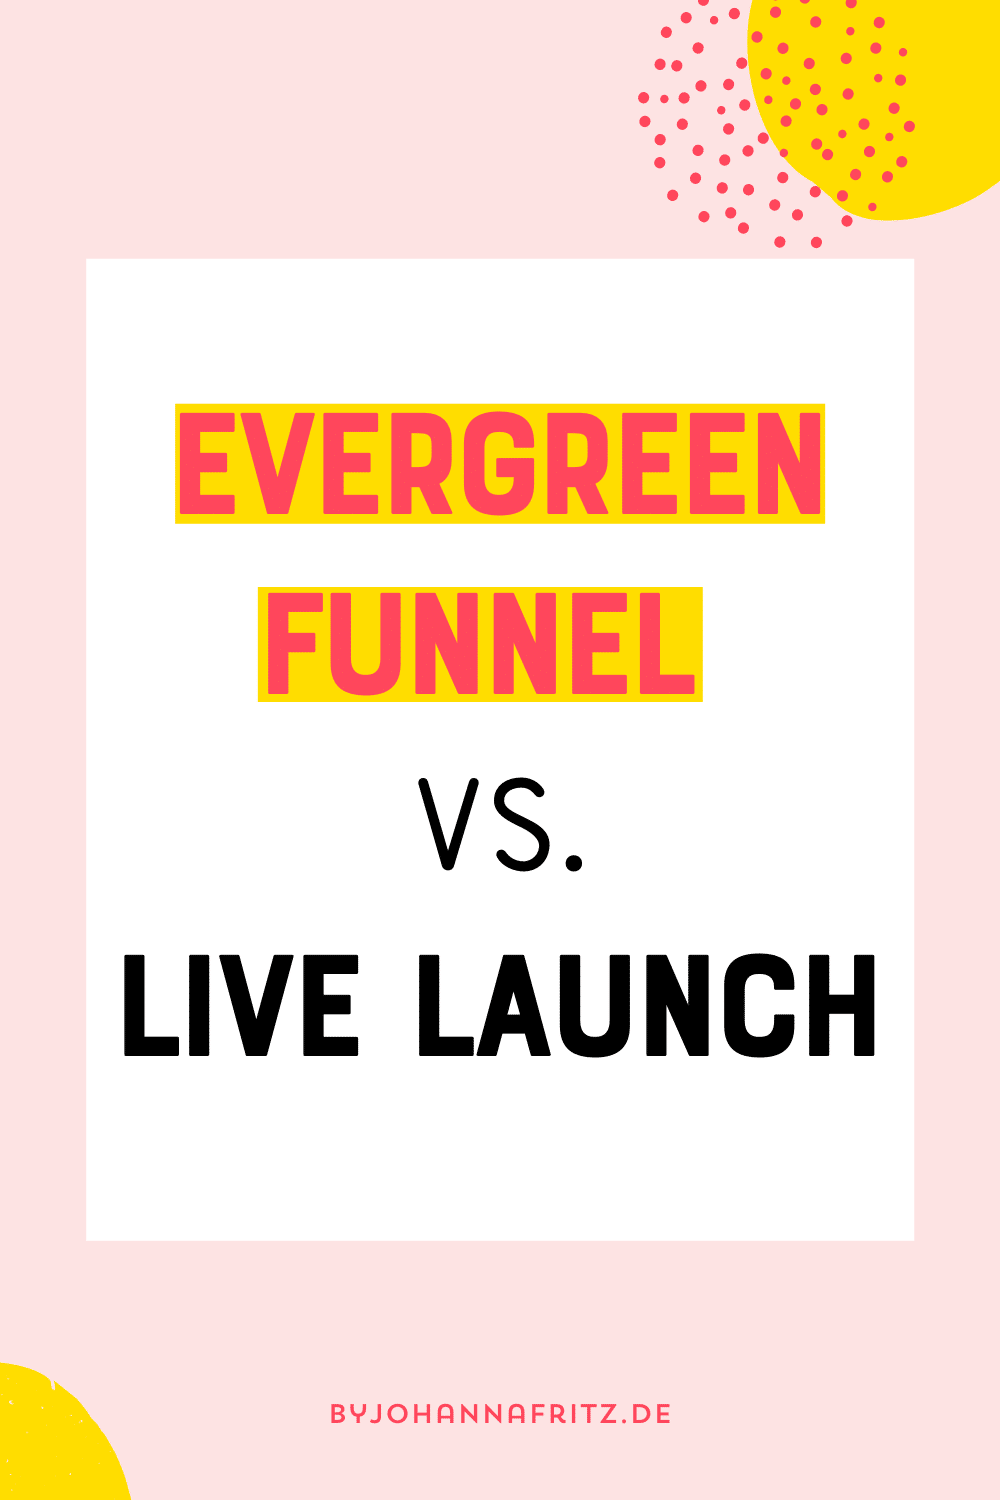 By Johanna Fritz - Live Launch vs. Evergreen Funnel